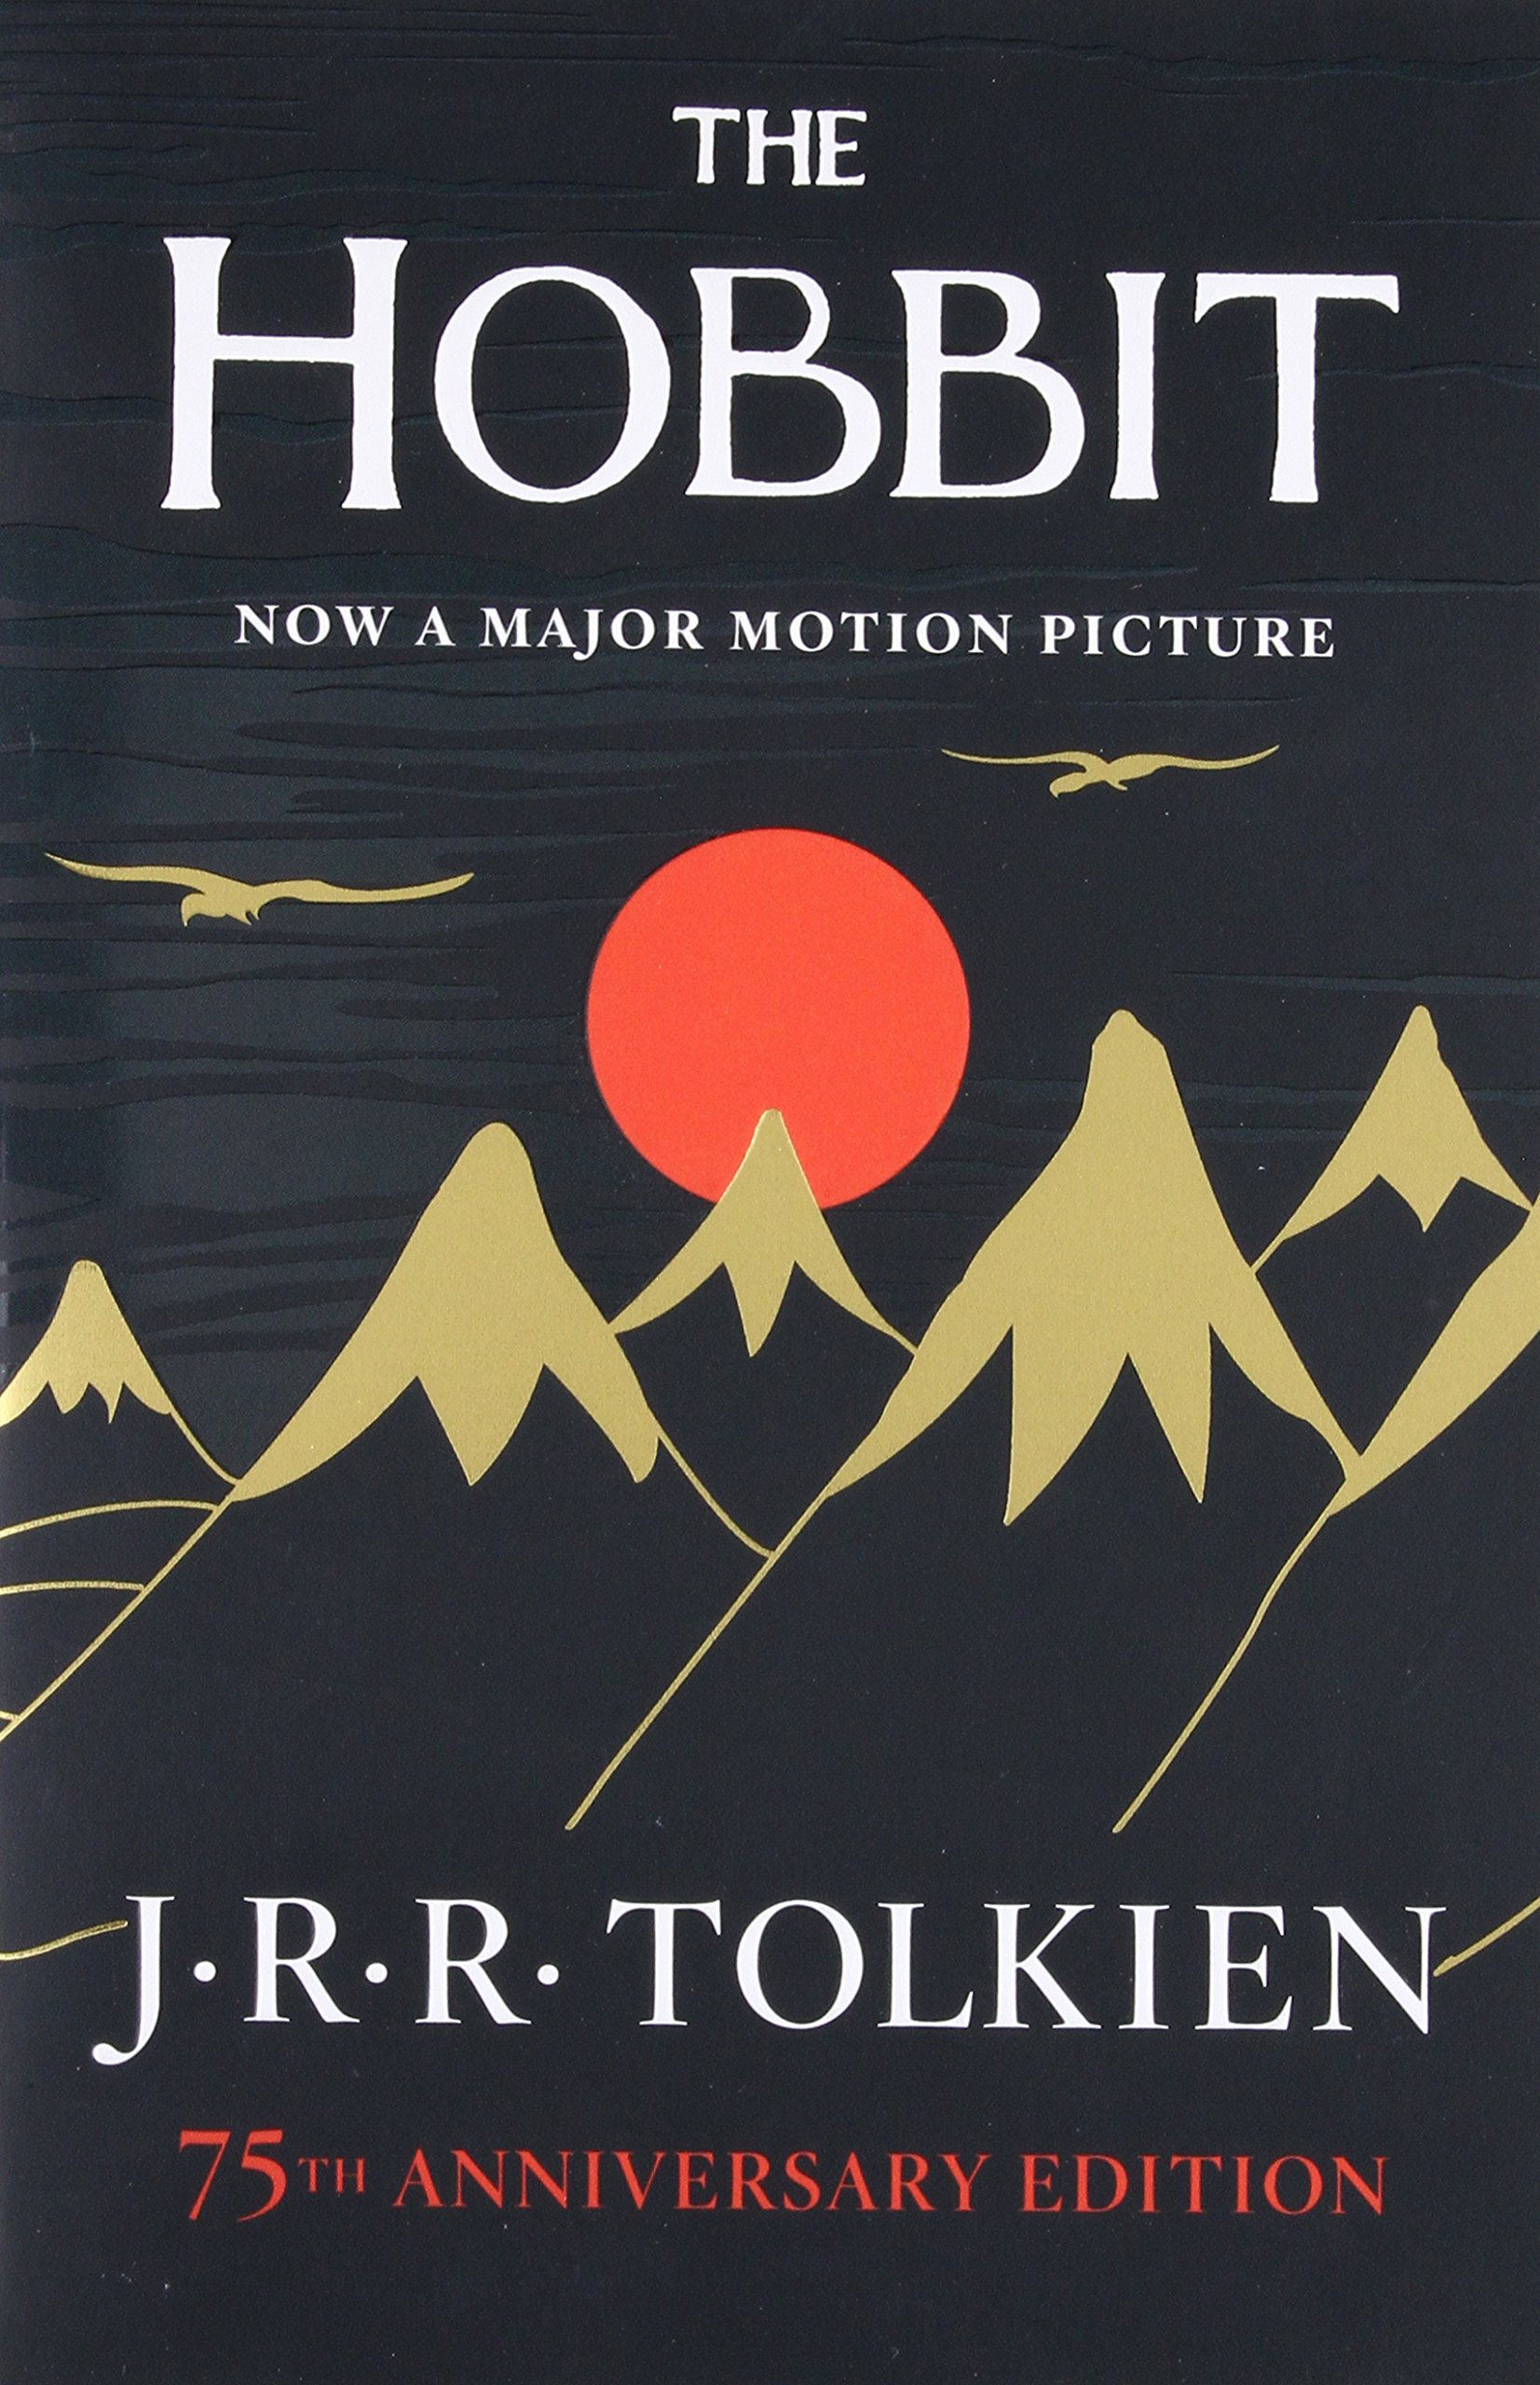 Image result for the hobbit book